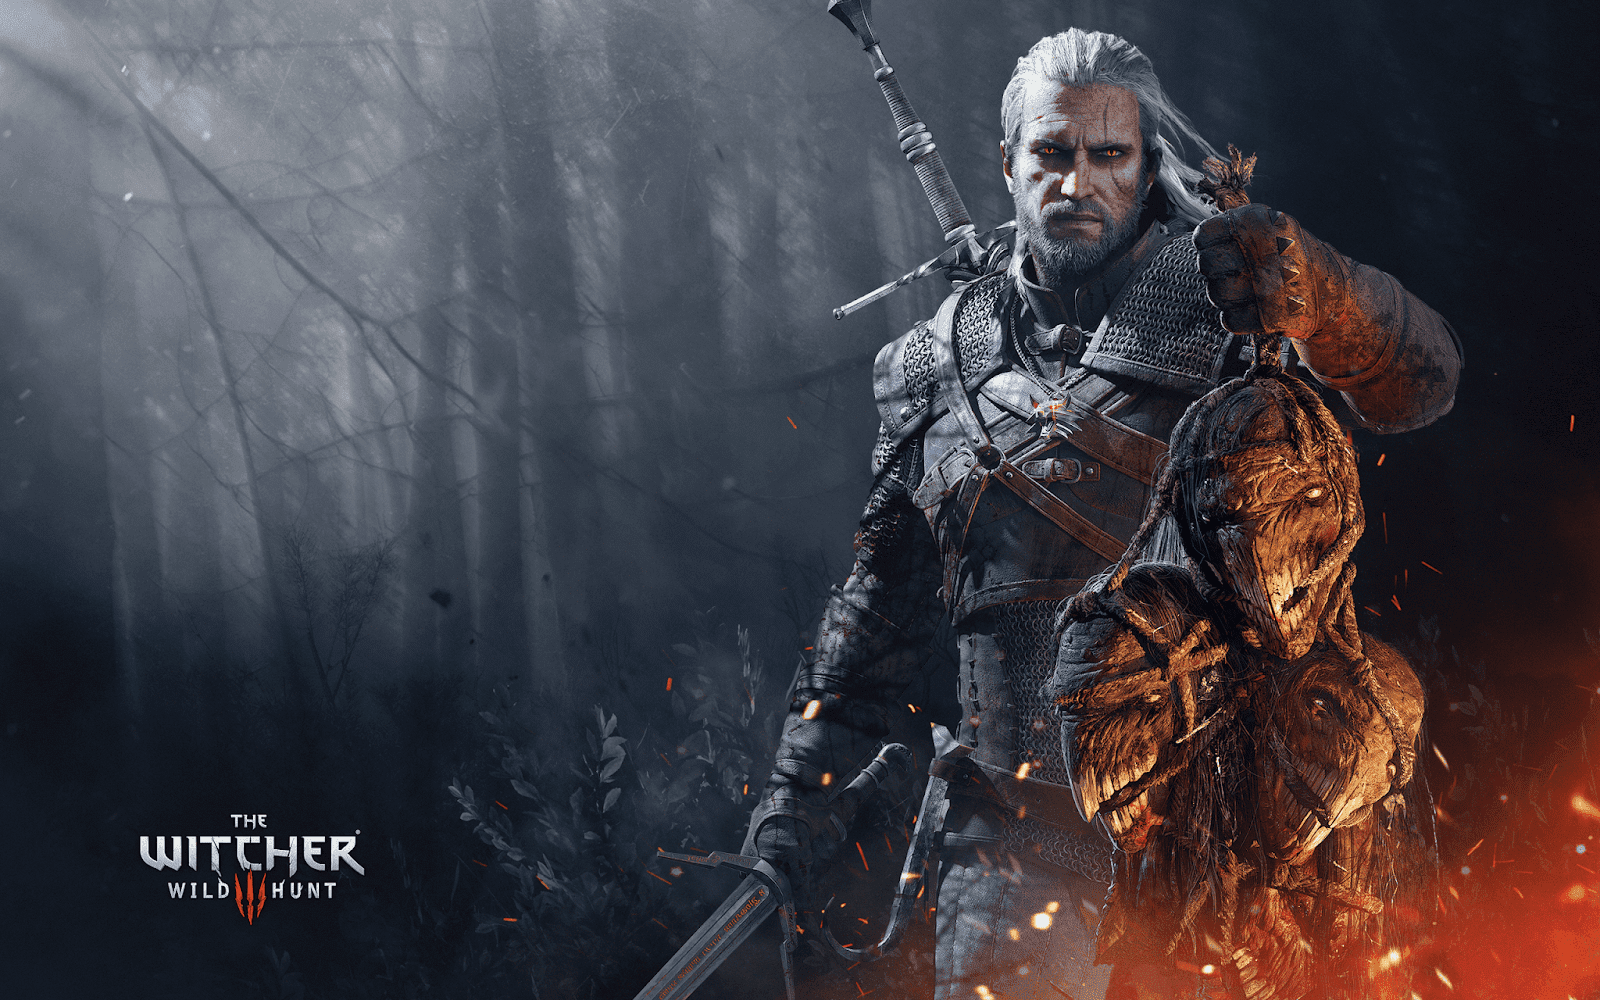 Witcher-wallpaper-for-desktop-hd-download-ultra-4k